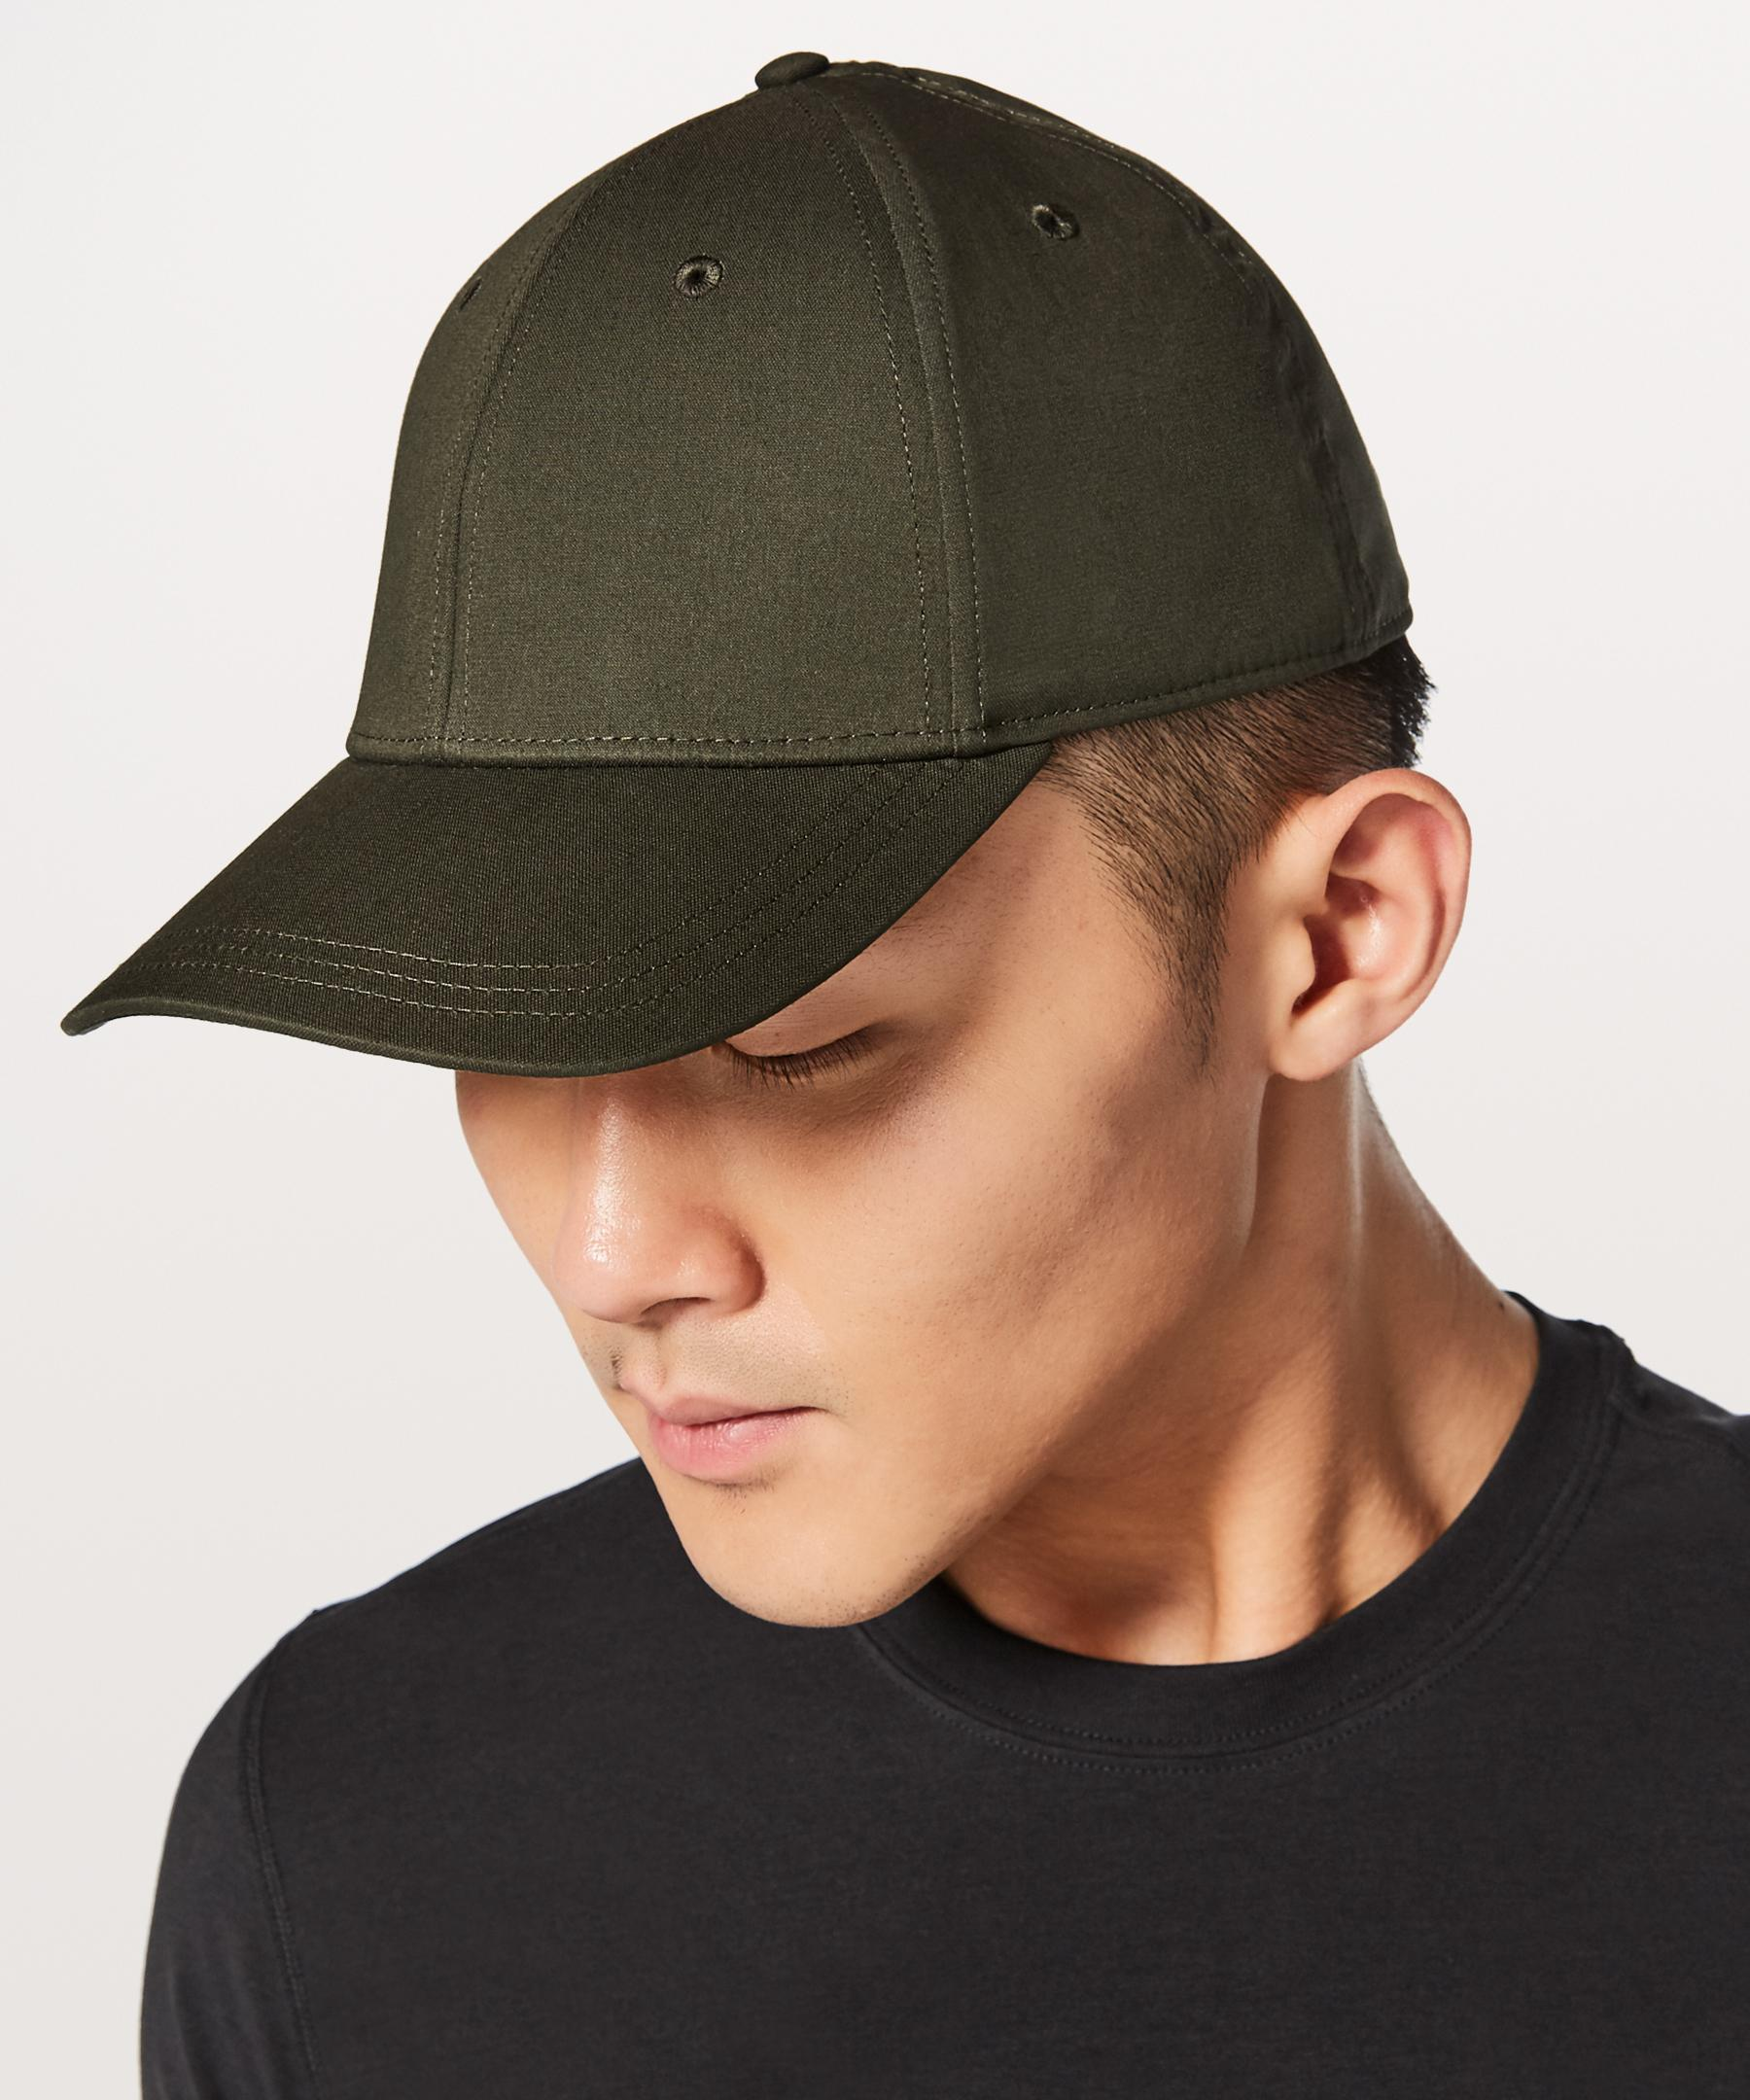 065621dff2a lululemon athletica - Green On The Fly Ball Cap for Men - Lyst. View  fullscreen